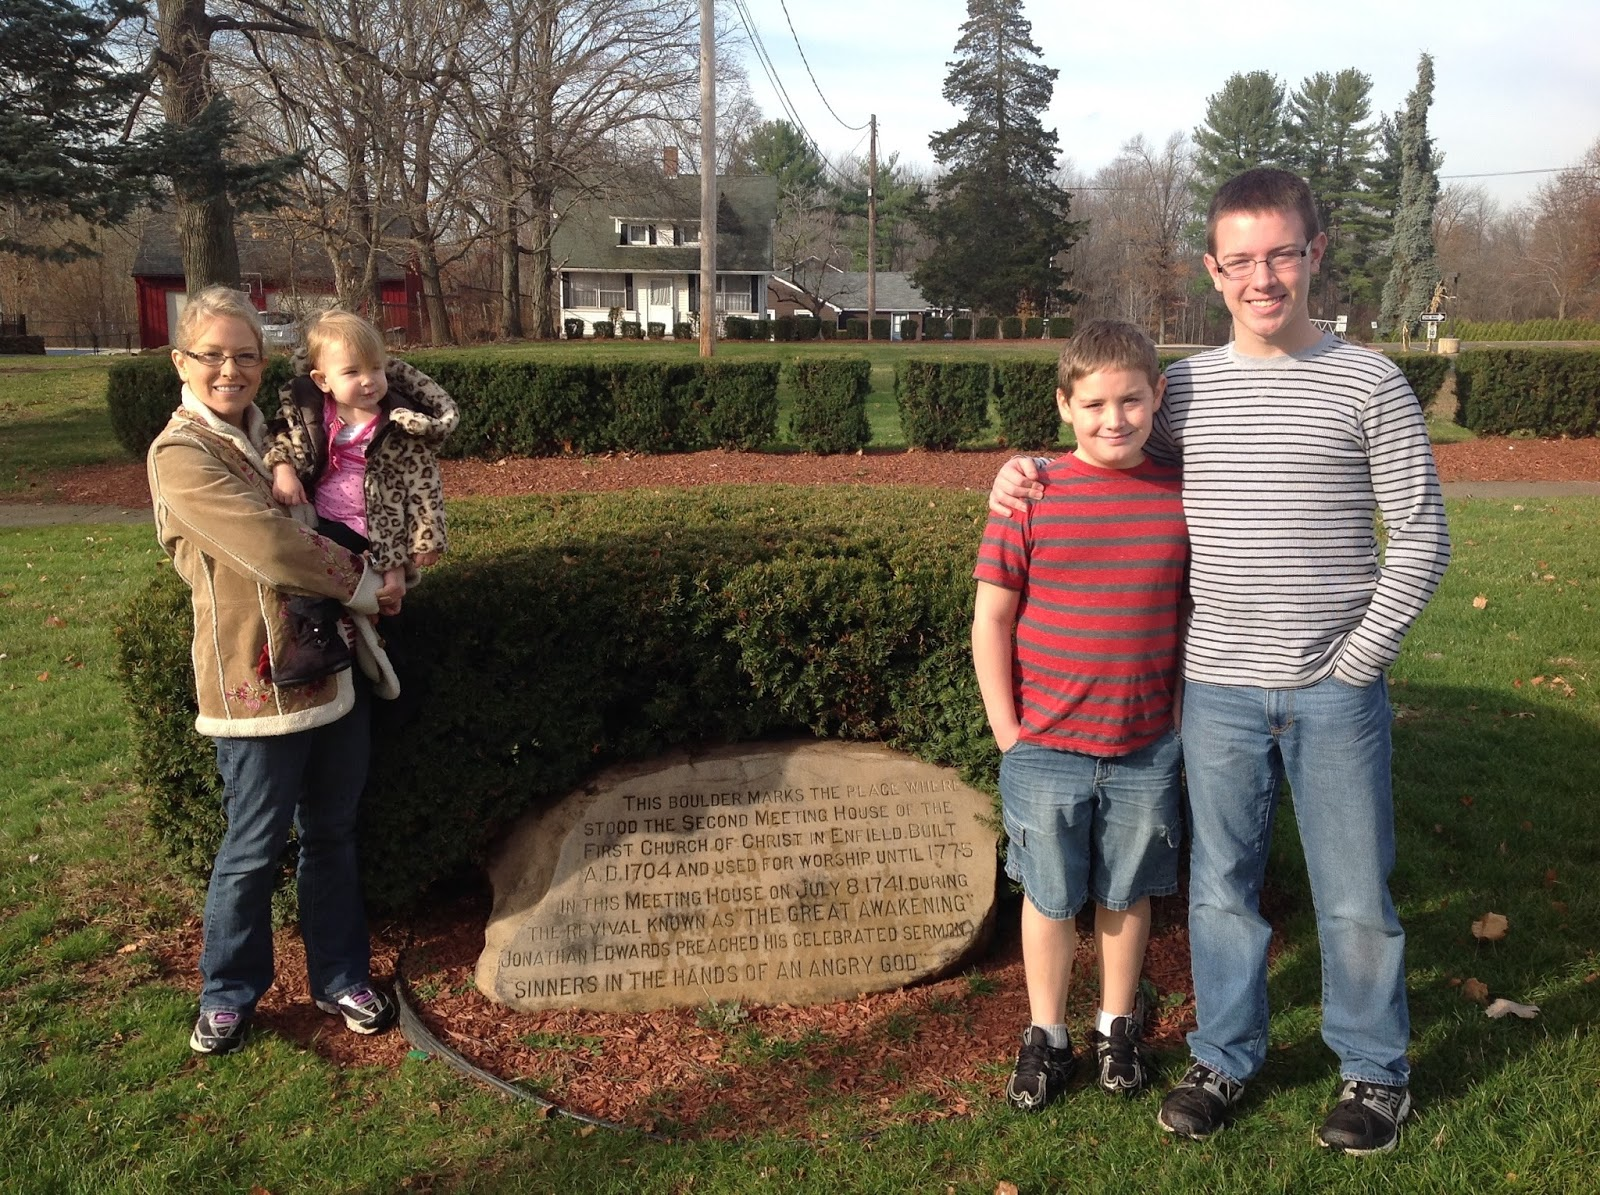 matthew dowling 2016 my family at the preaching site of sinners in the hands of an angry god